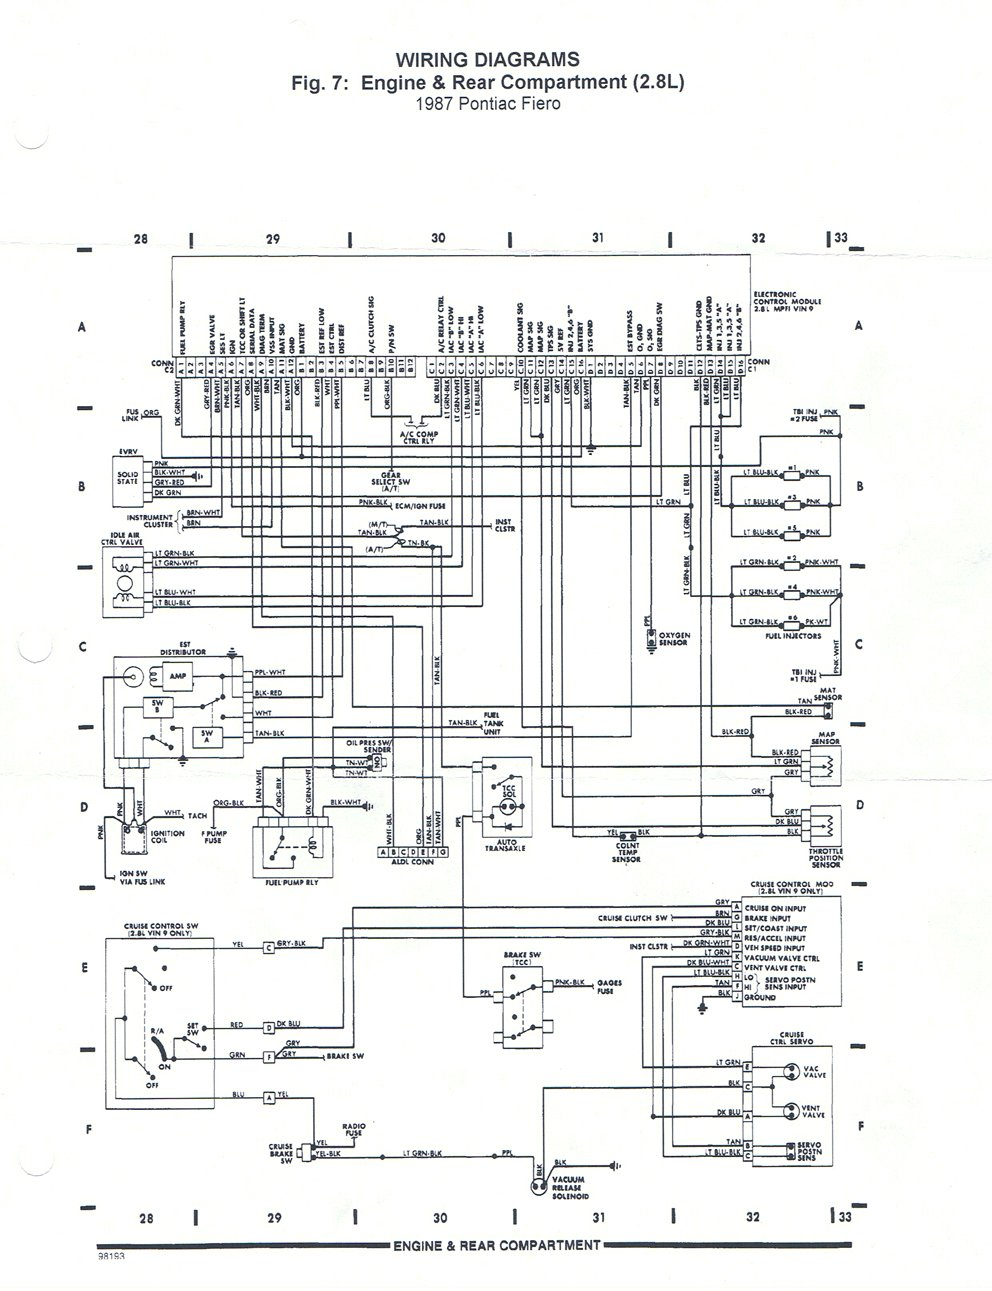 1988 f250 wiring diagram lt 1988 fiero wiring diagram pennock's fiero forum - 1988gt + 3800 = fun? we'll see ...